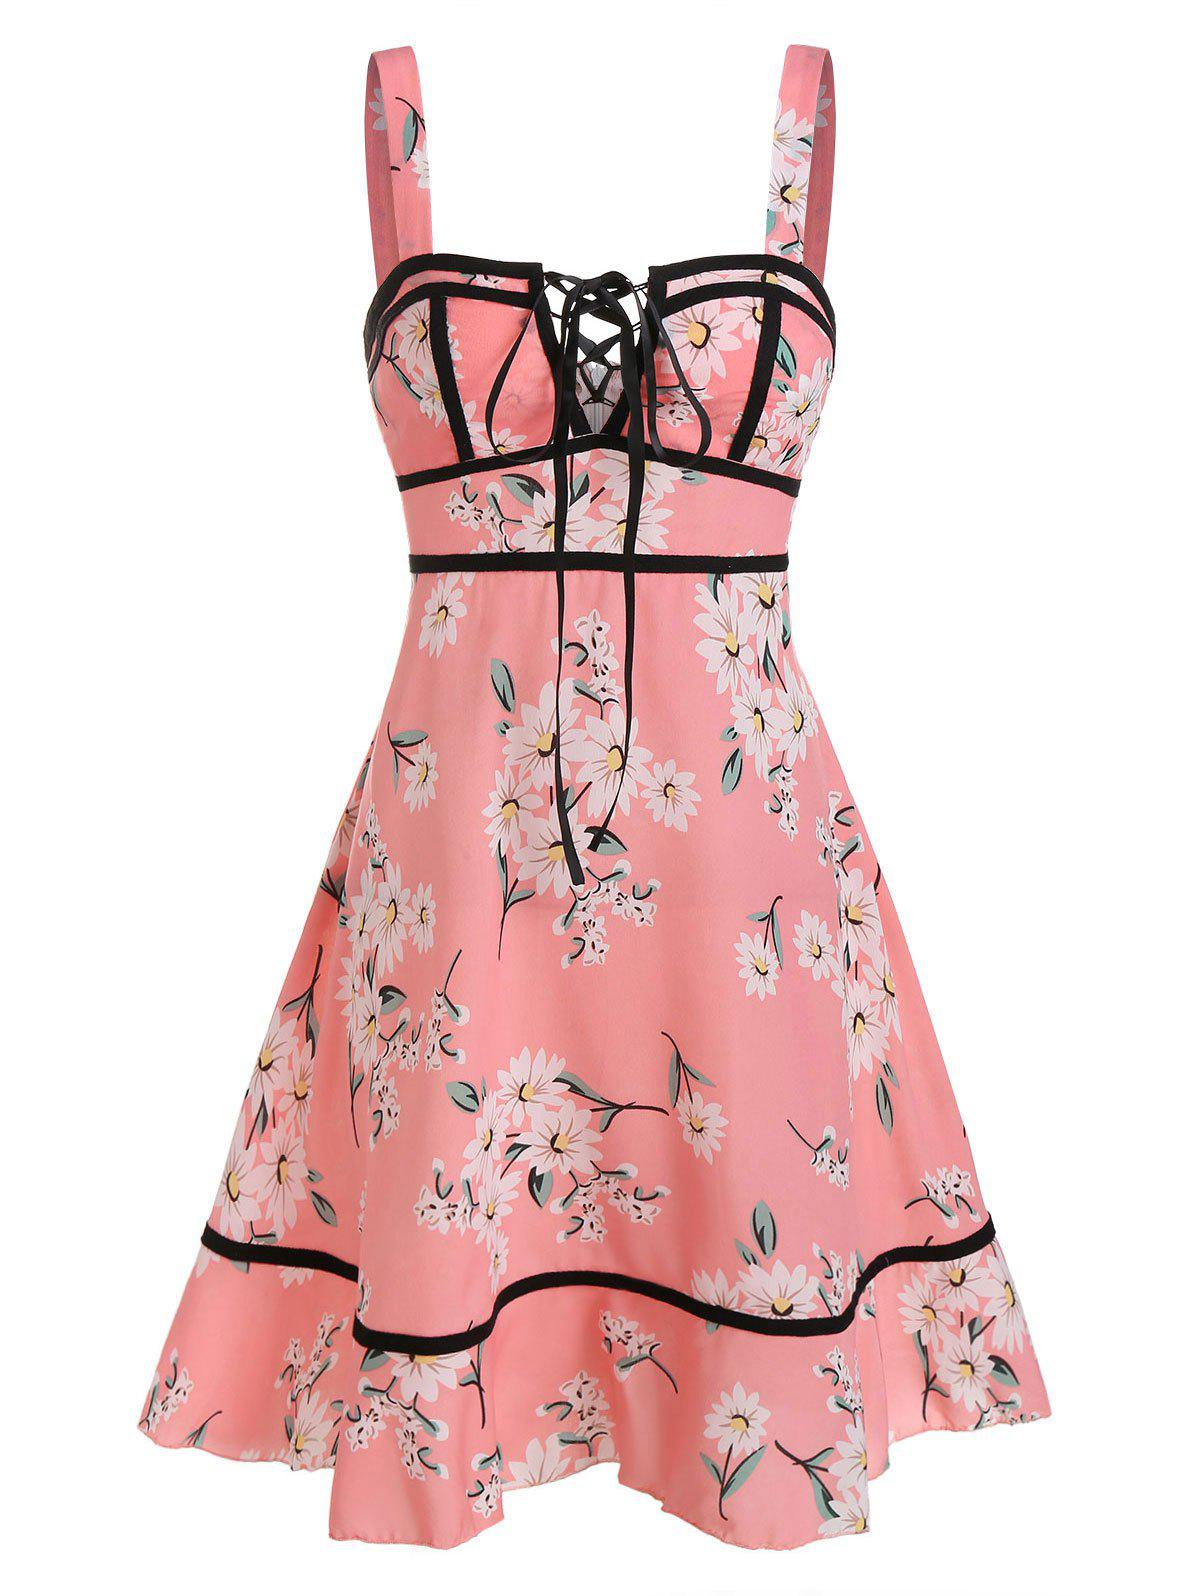 Flower Print Lace-up Sleeveless Dress - PINK L